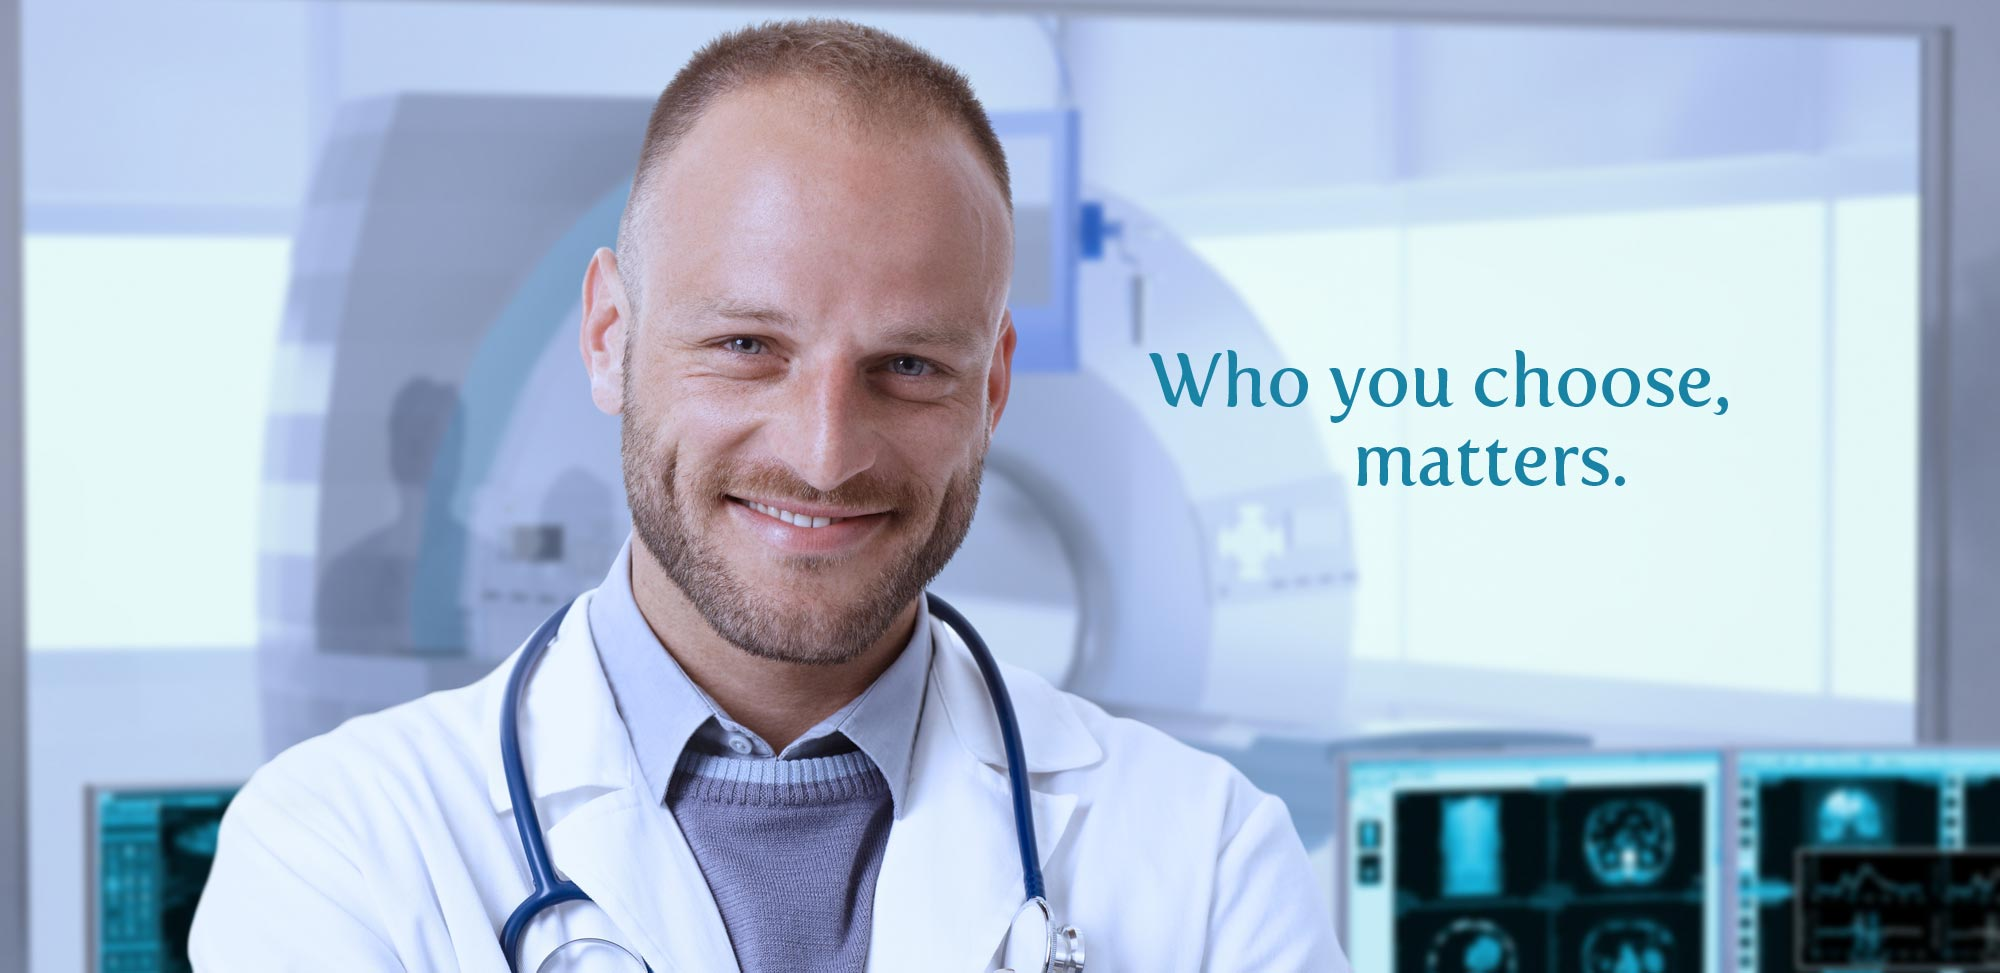 DRA - Diagnostic Radiology Associates: Who you choose, matters.